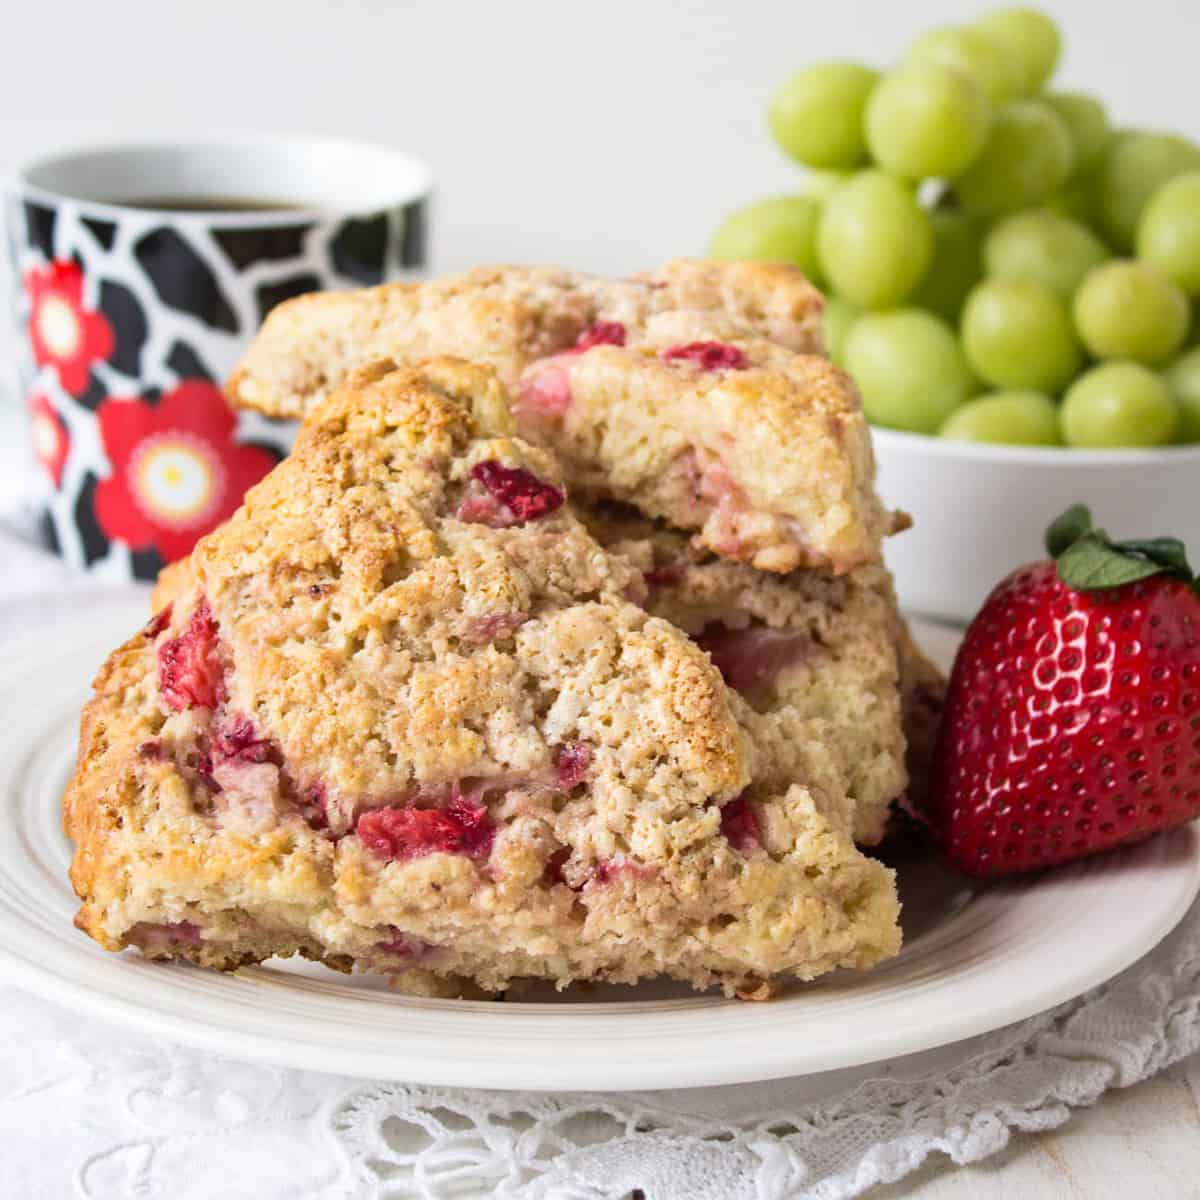 Two strawberry scones on a small white plate.